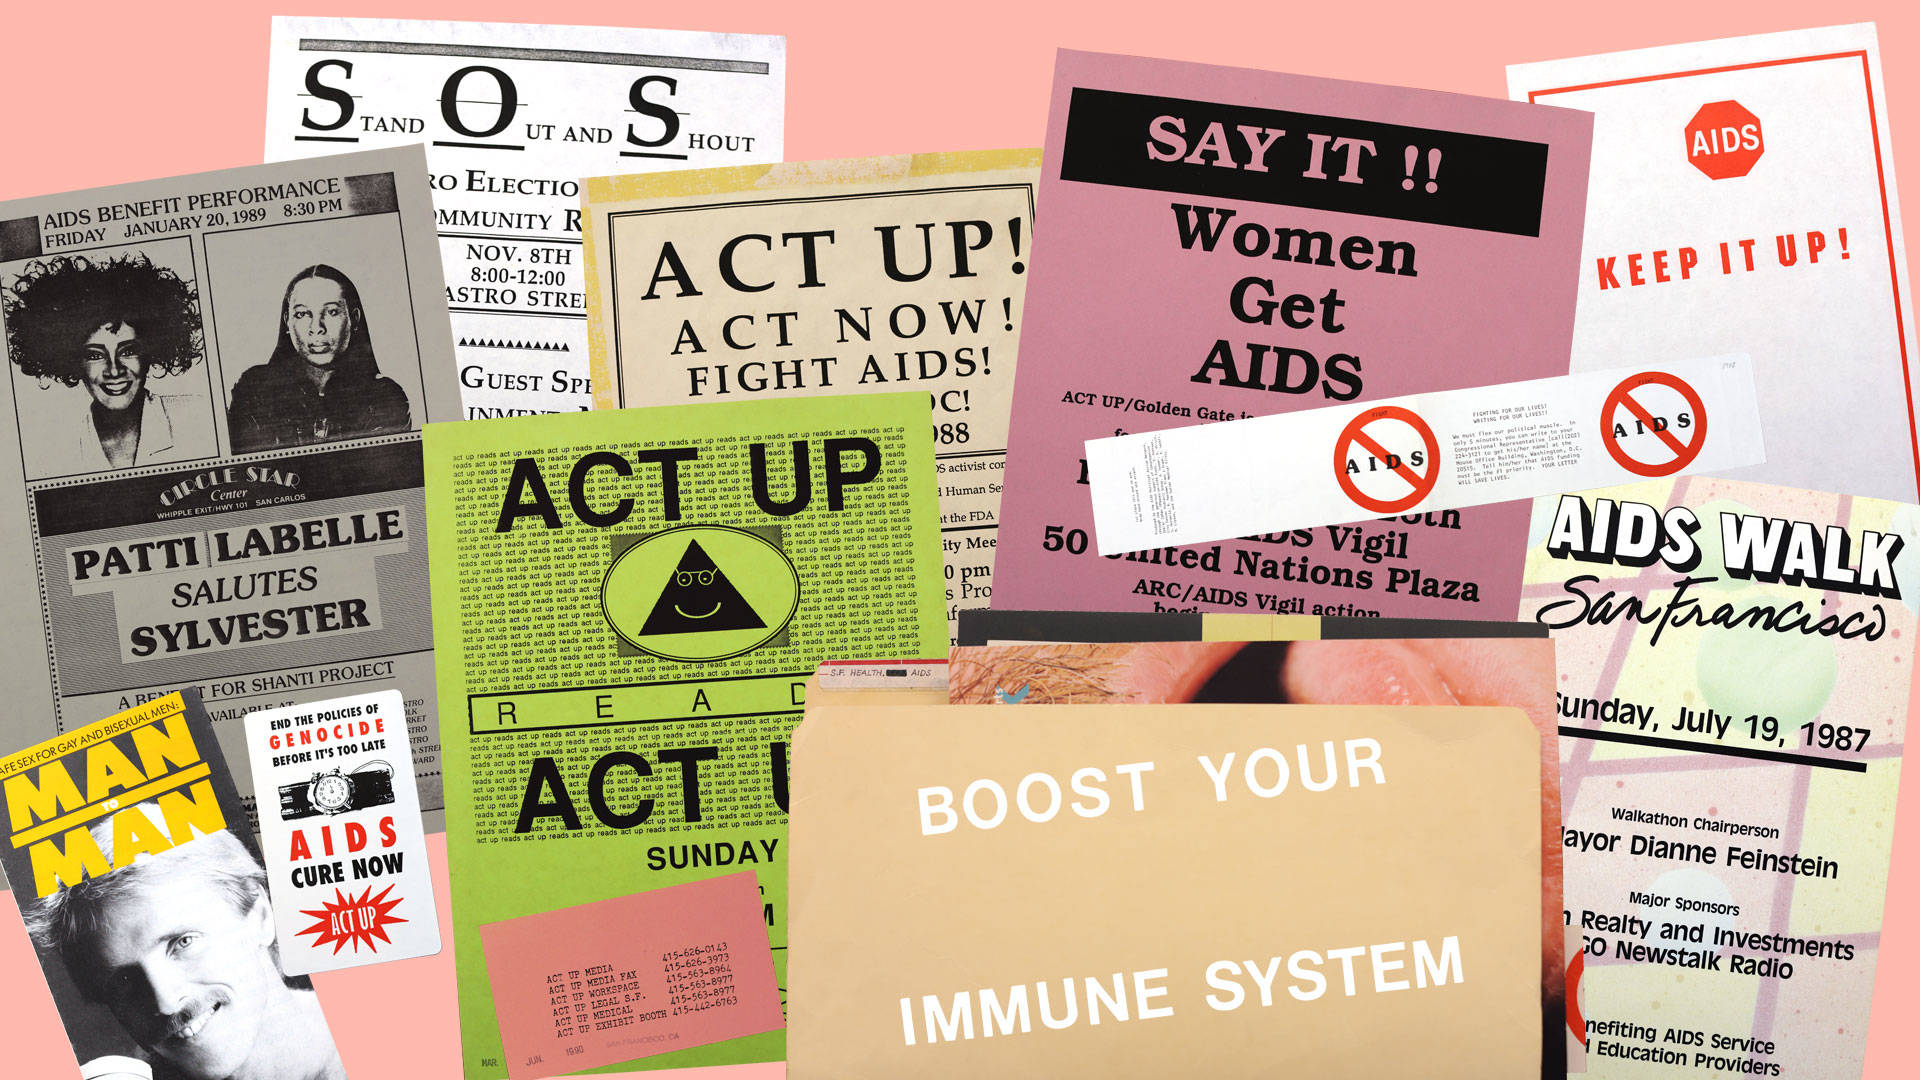 Ephemera from 1980s AIDS activism groups, nonprofits, foundations and related events. Material from the Gay and Lesbian Center ephemera collection and the San Francisco Ephemera Collection, San Francisco Public Library; Collage by Sarah Hotchkiss/KQED